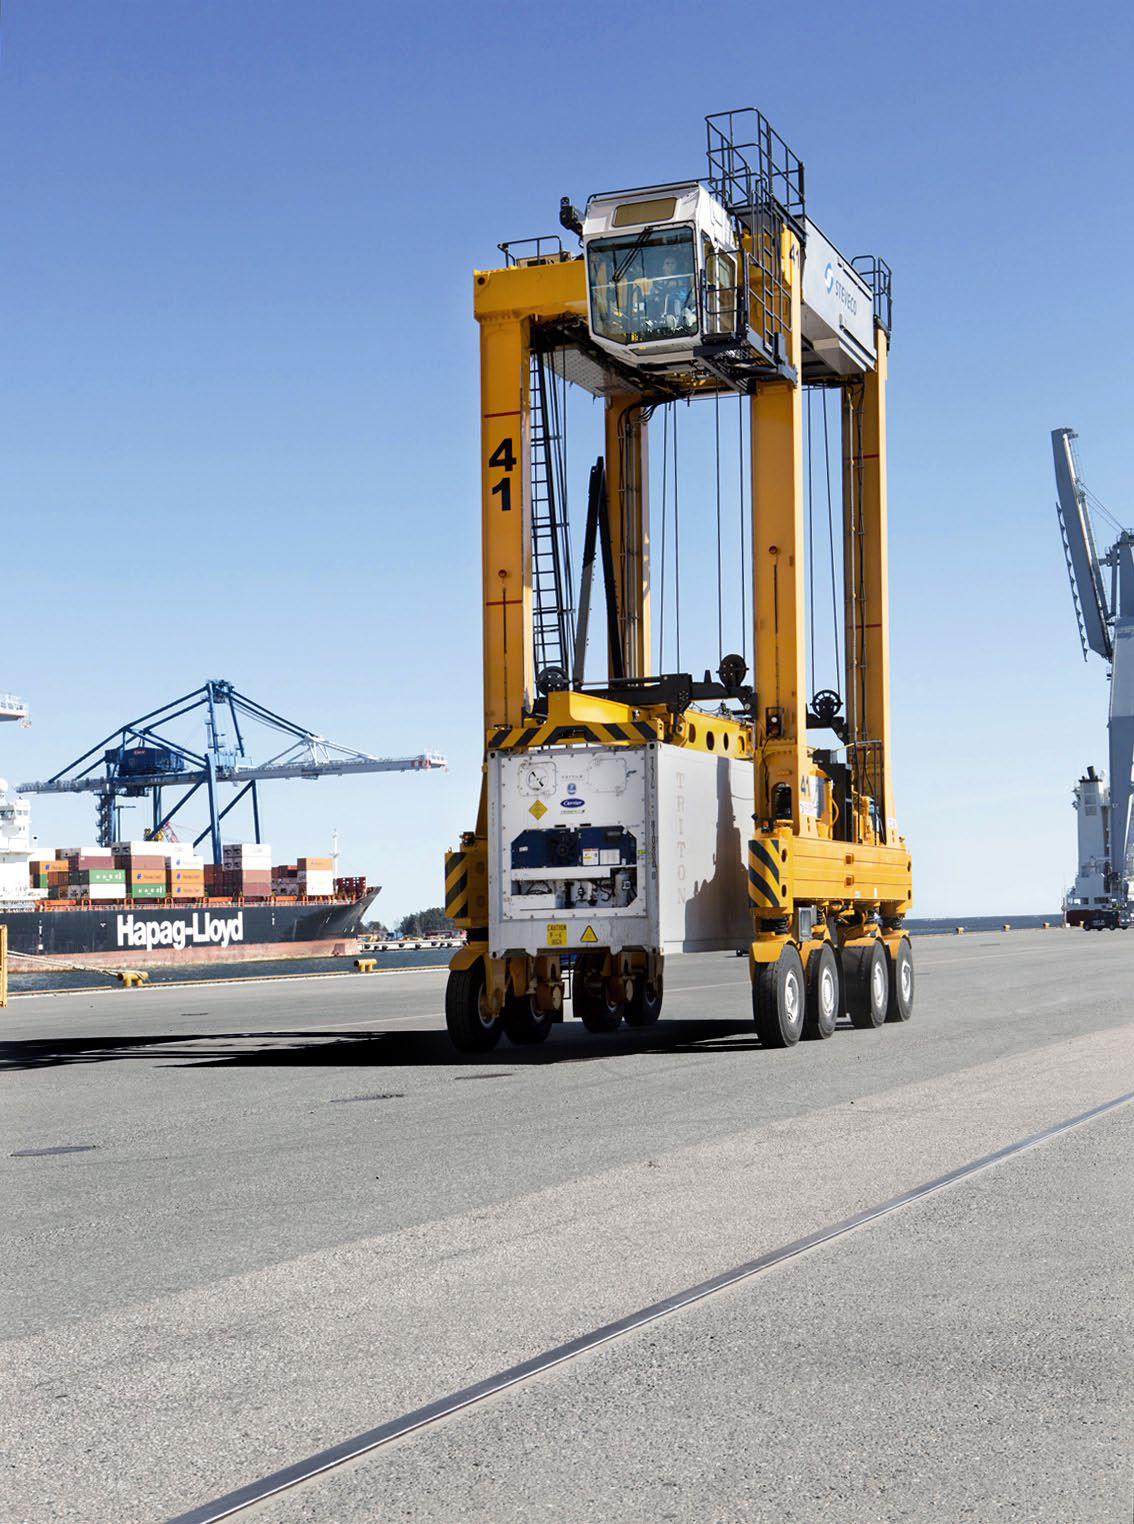 Digitalisation and data as solutions to ports' problems?